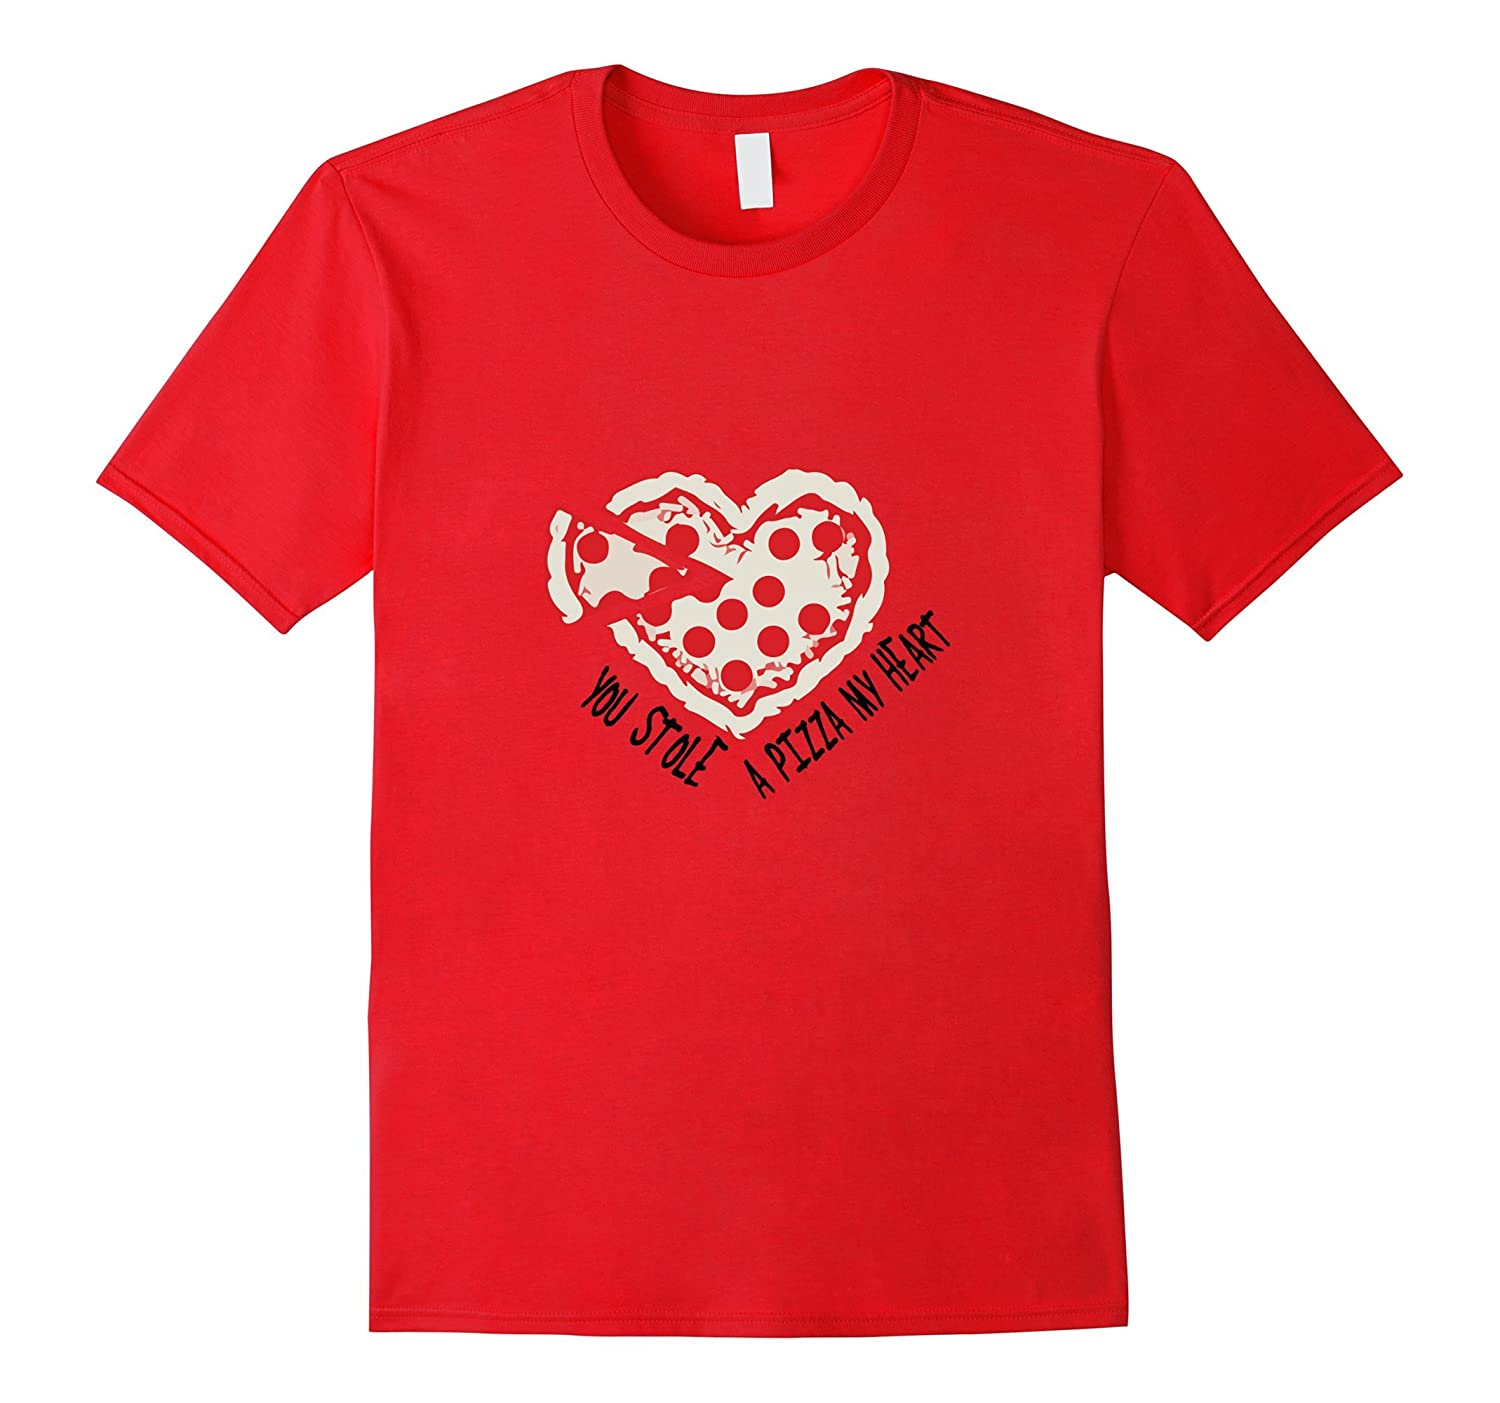 You Stole a Pizza My Heart T-shirt-Rose